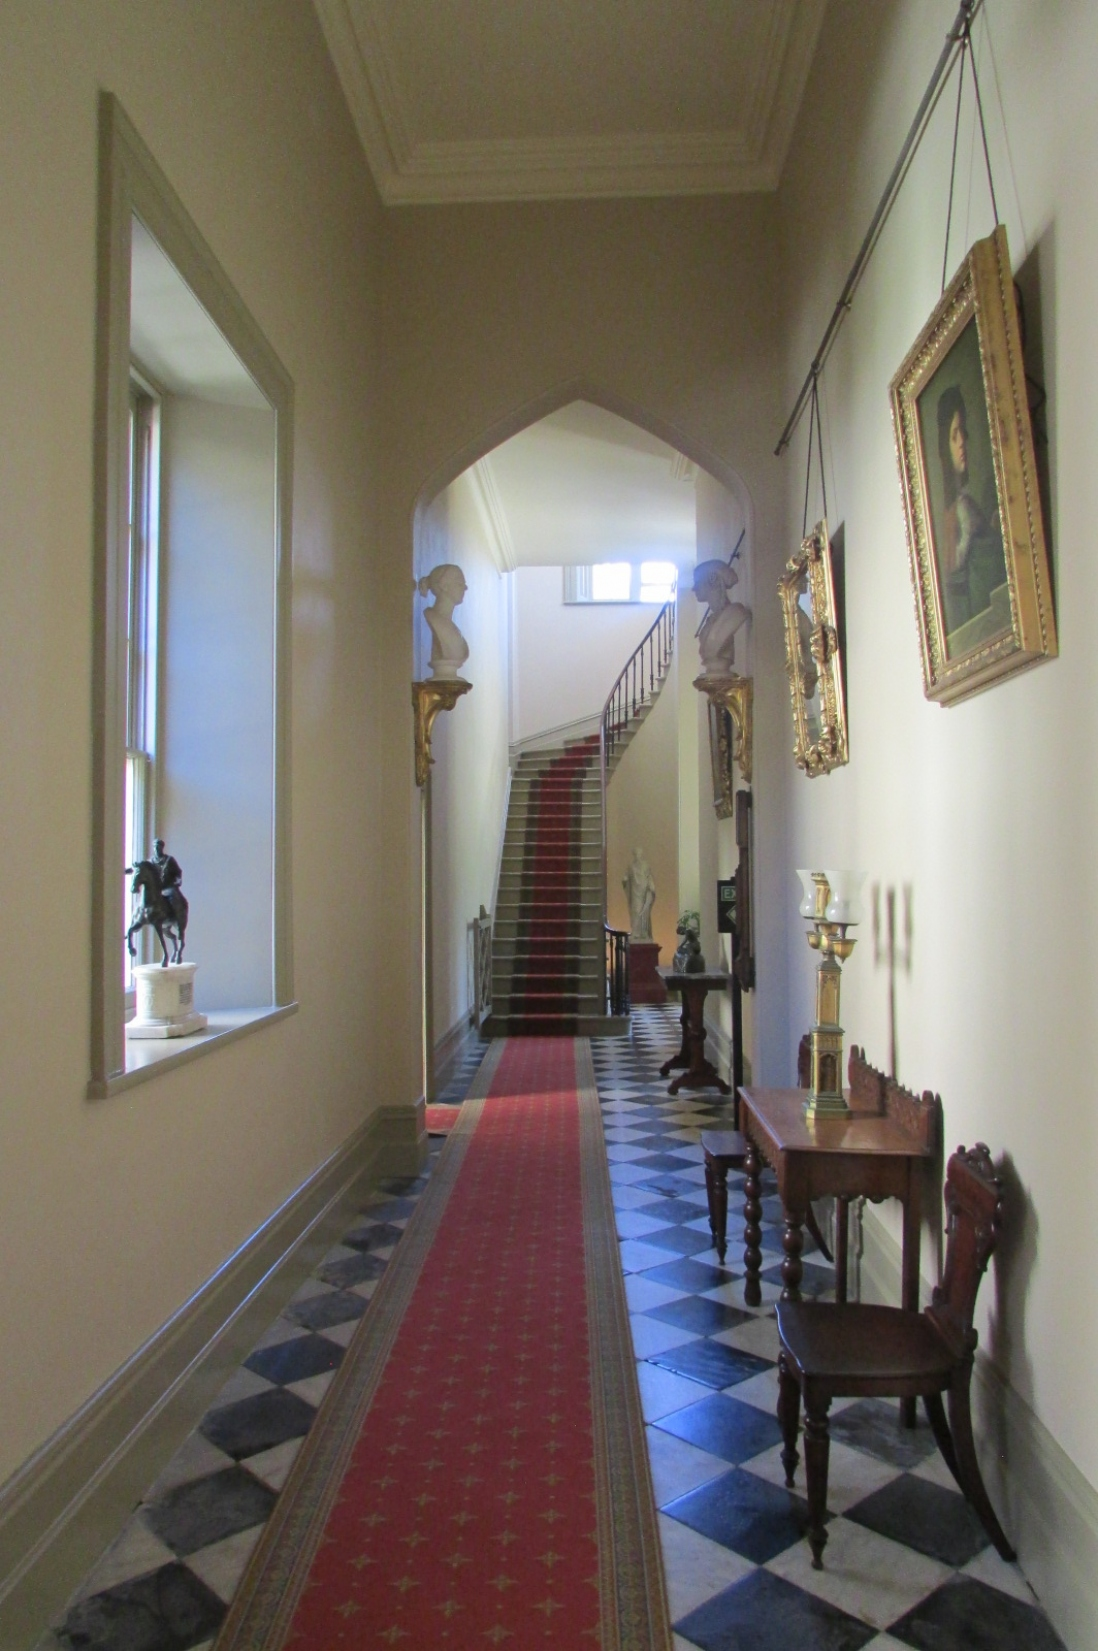 Looking down long hall, with furniture and paintings replaced after work completion.